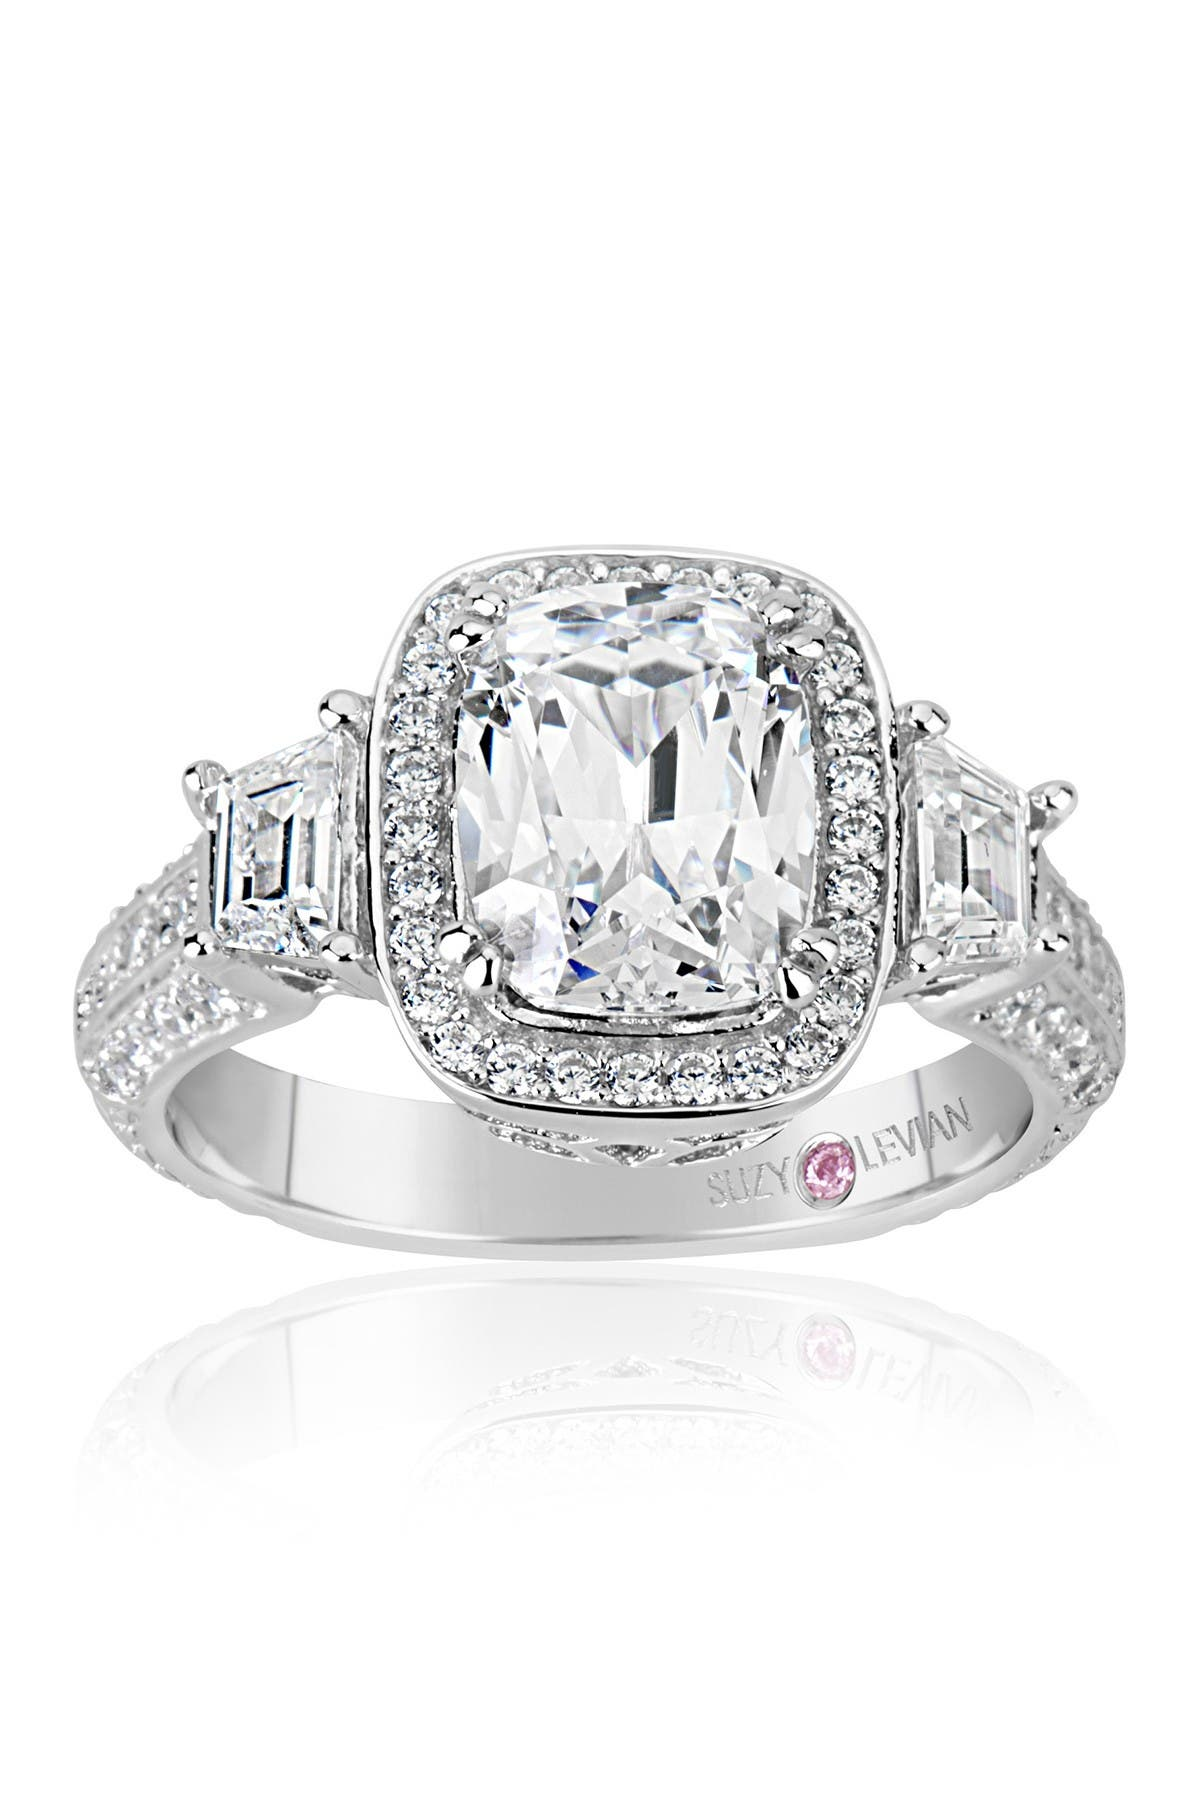 Image of Suzy Levian Sterling Silver Cushion-Cut CZ Center Stone Ring